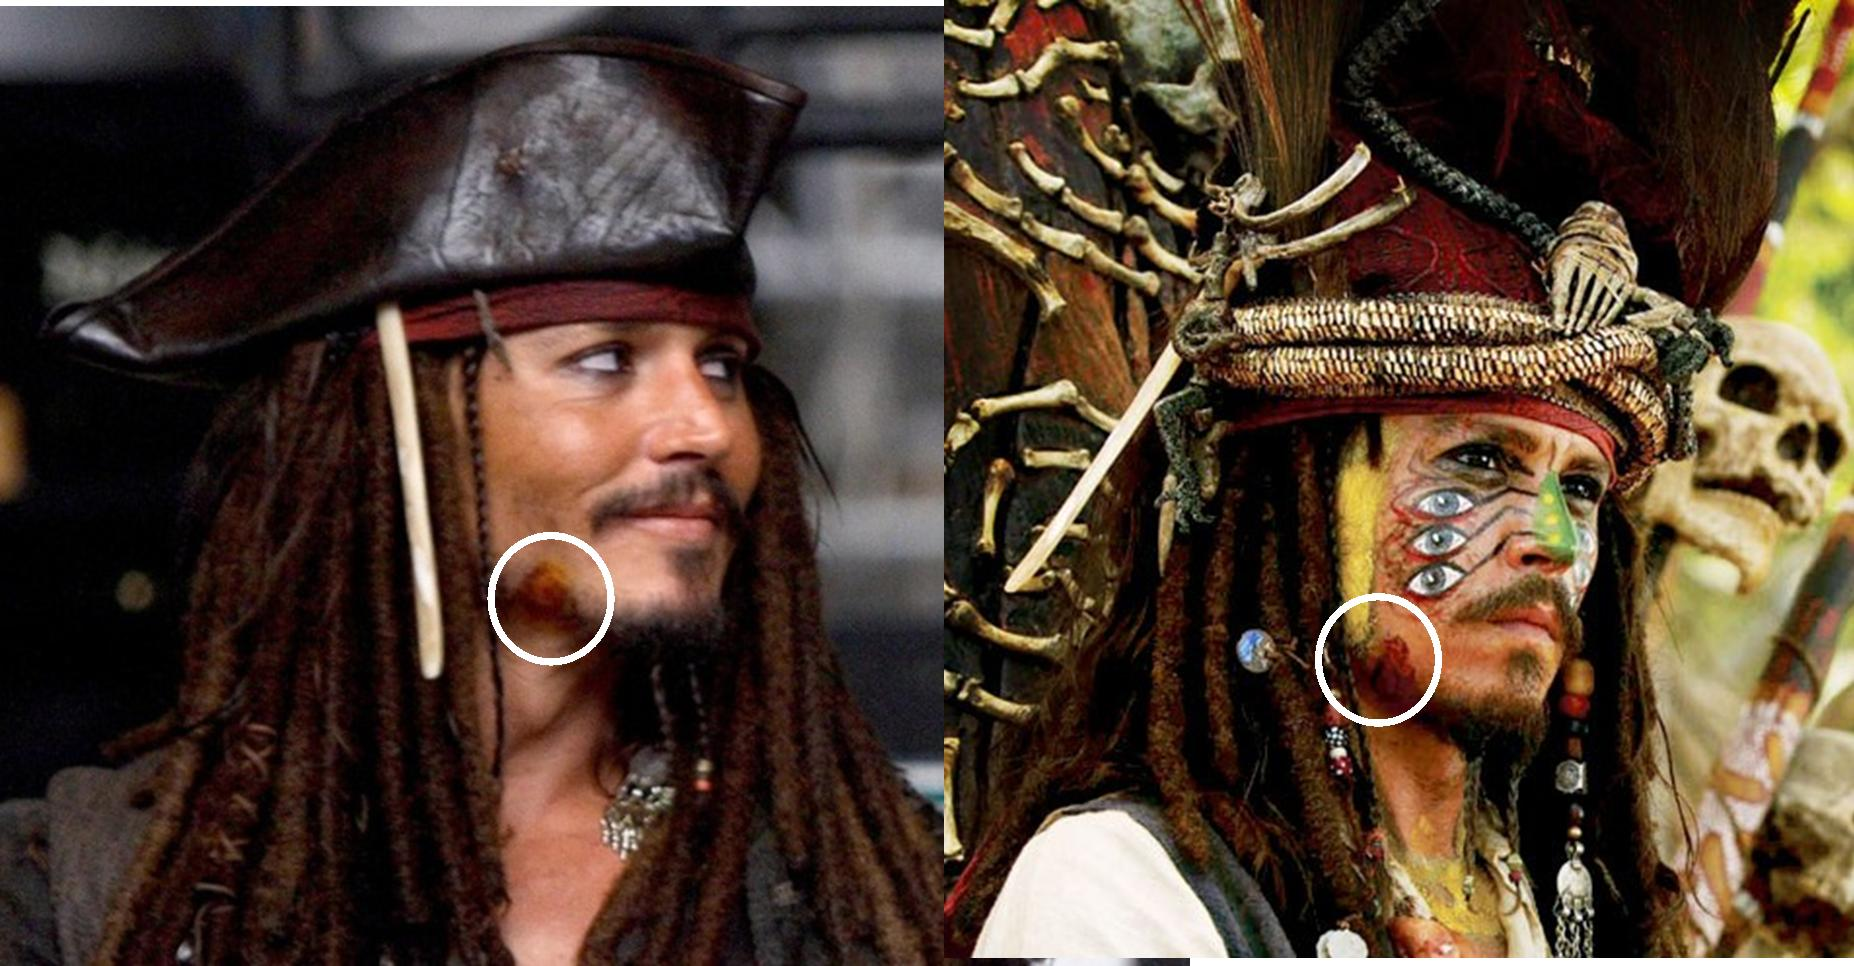 Jack Sparrow Costuming - A Pirate's Compendium